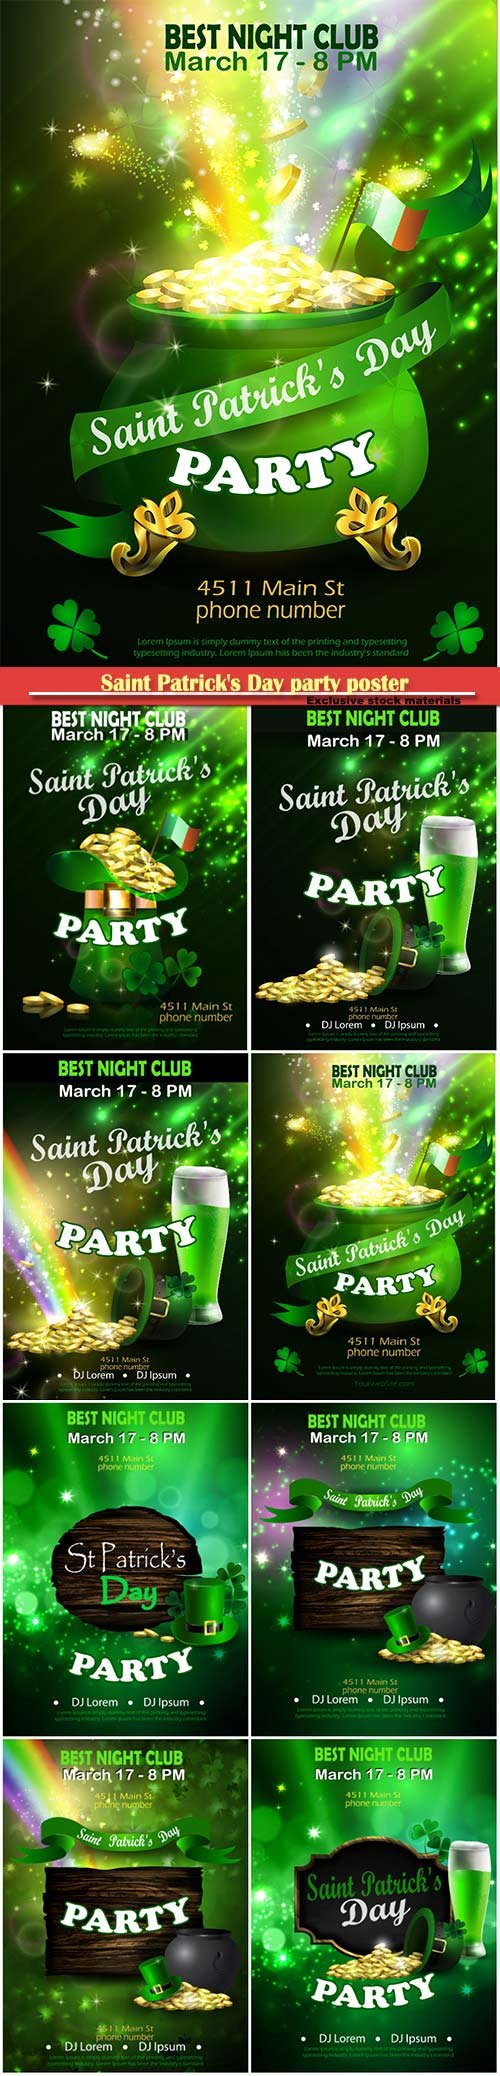 Saint Patrick's Day party poster invitation vector